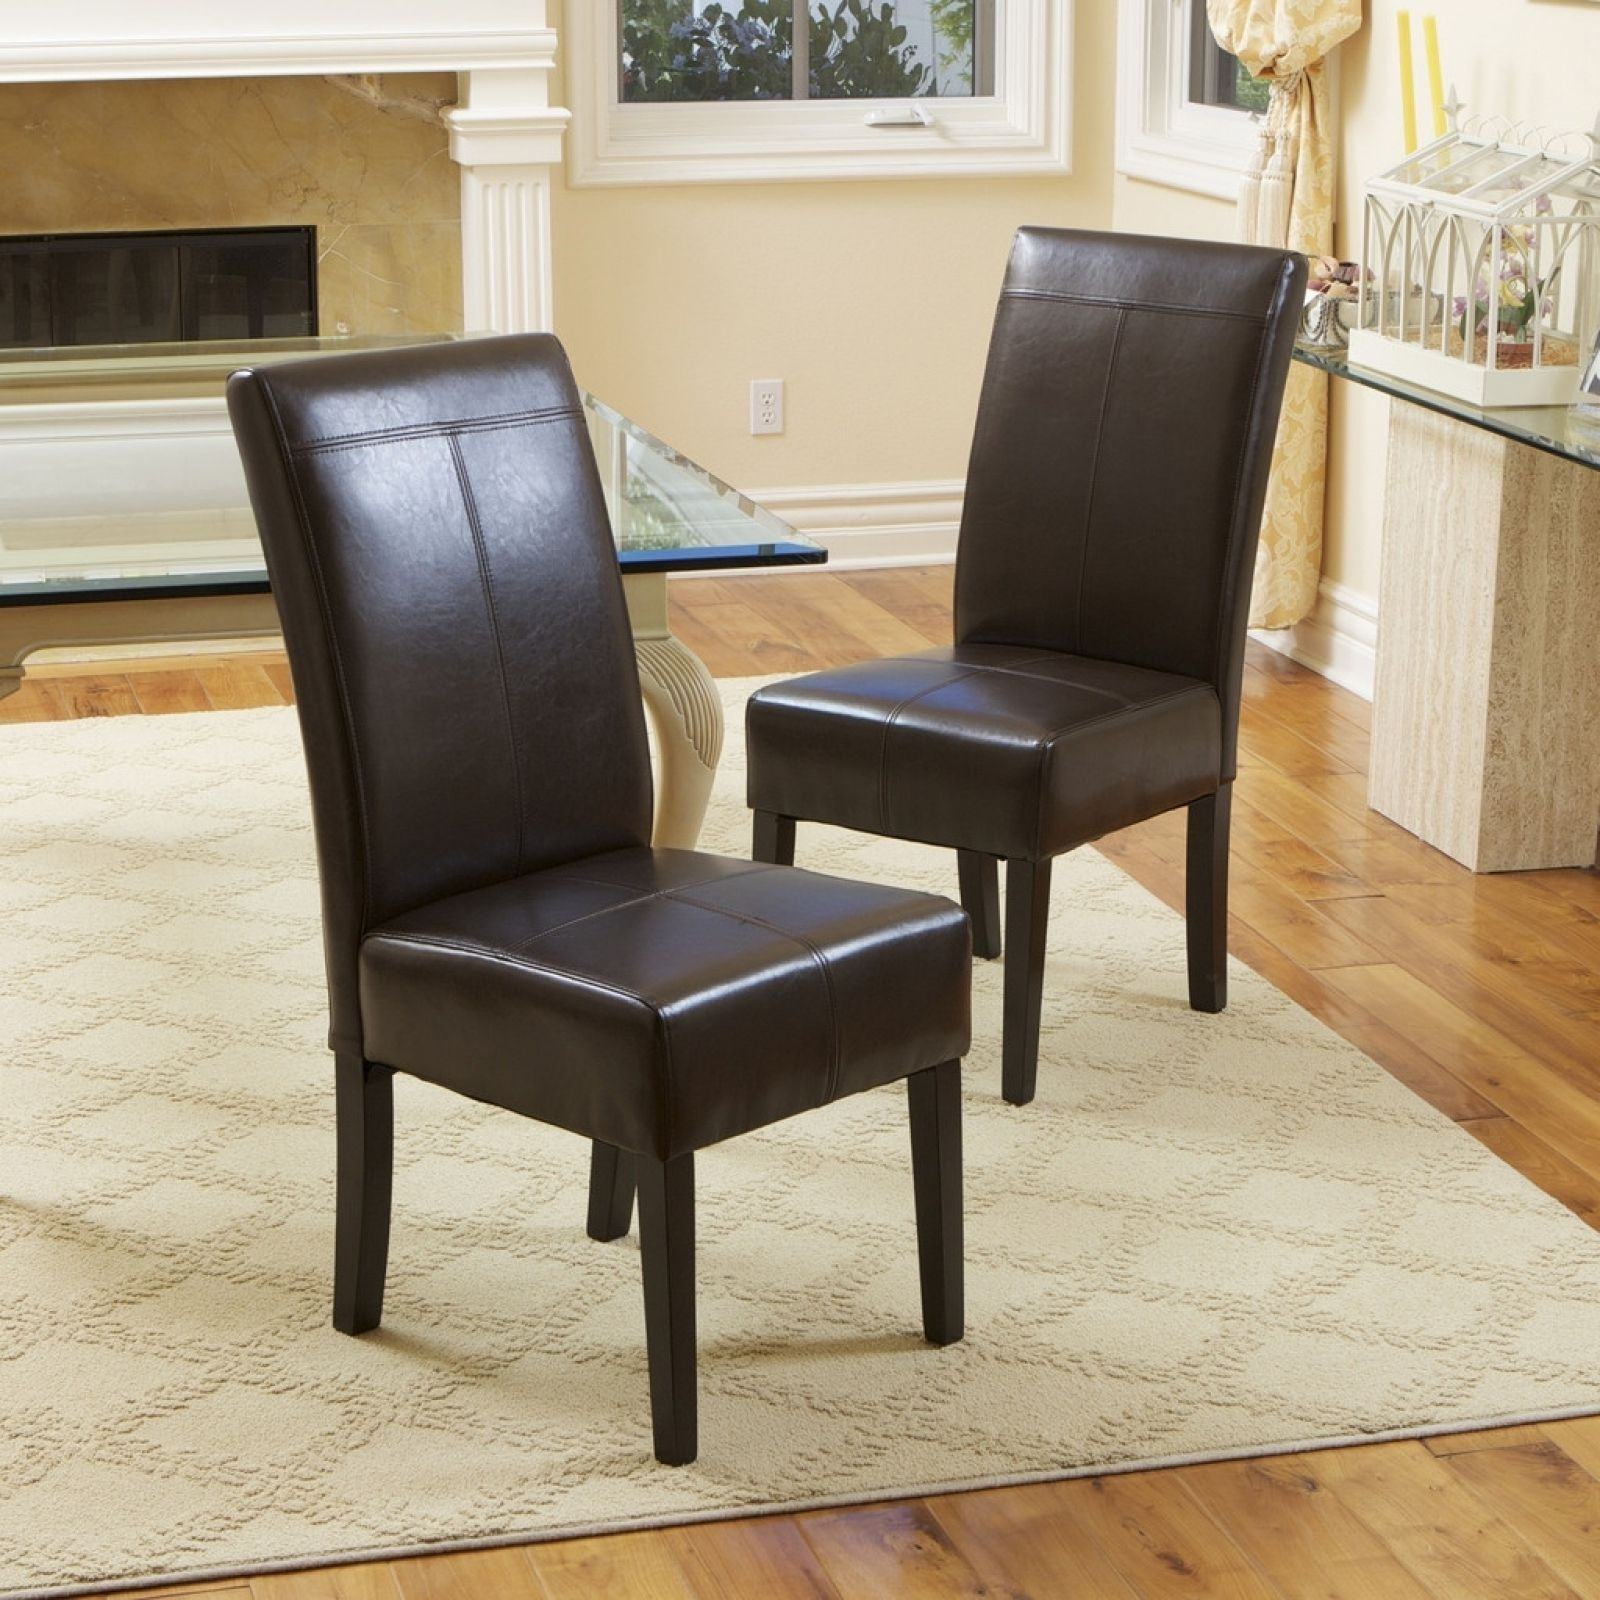 Used Dining Room Chairs Ebay Solispir Table Tables Black